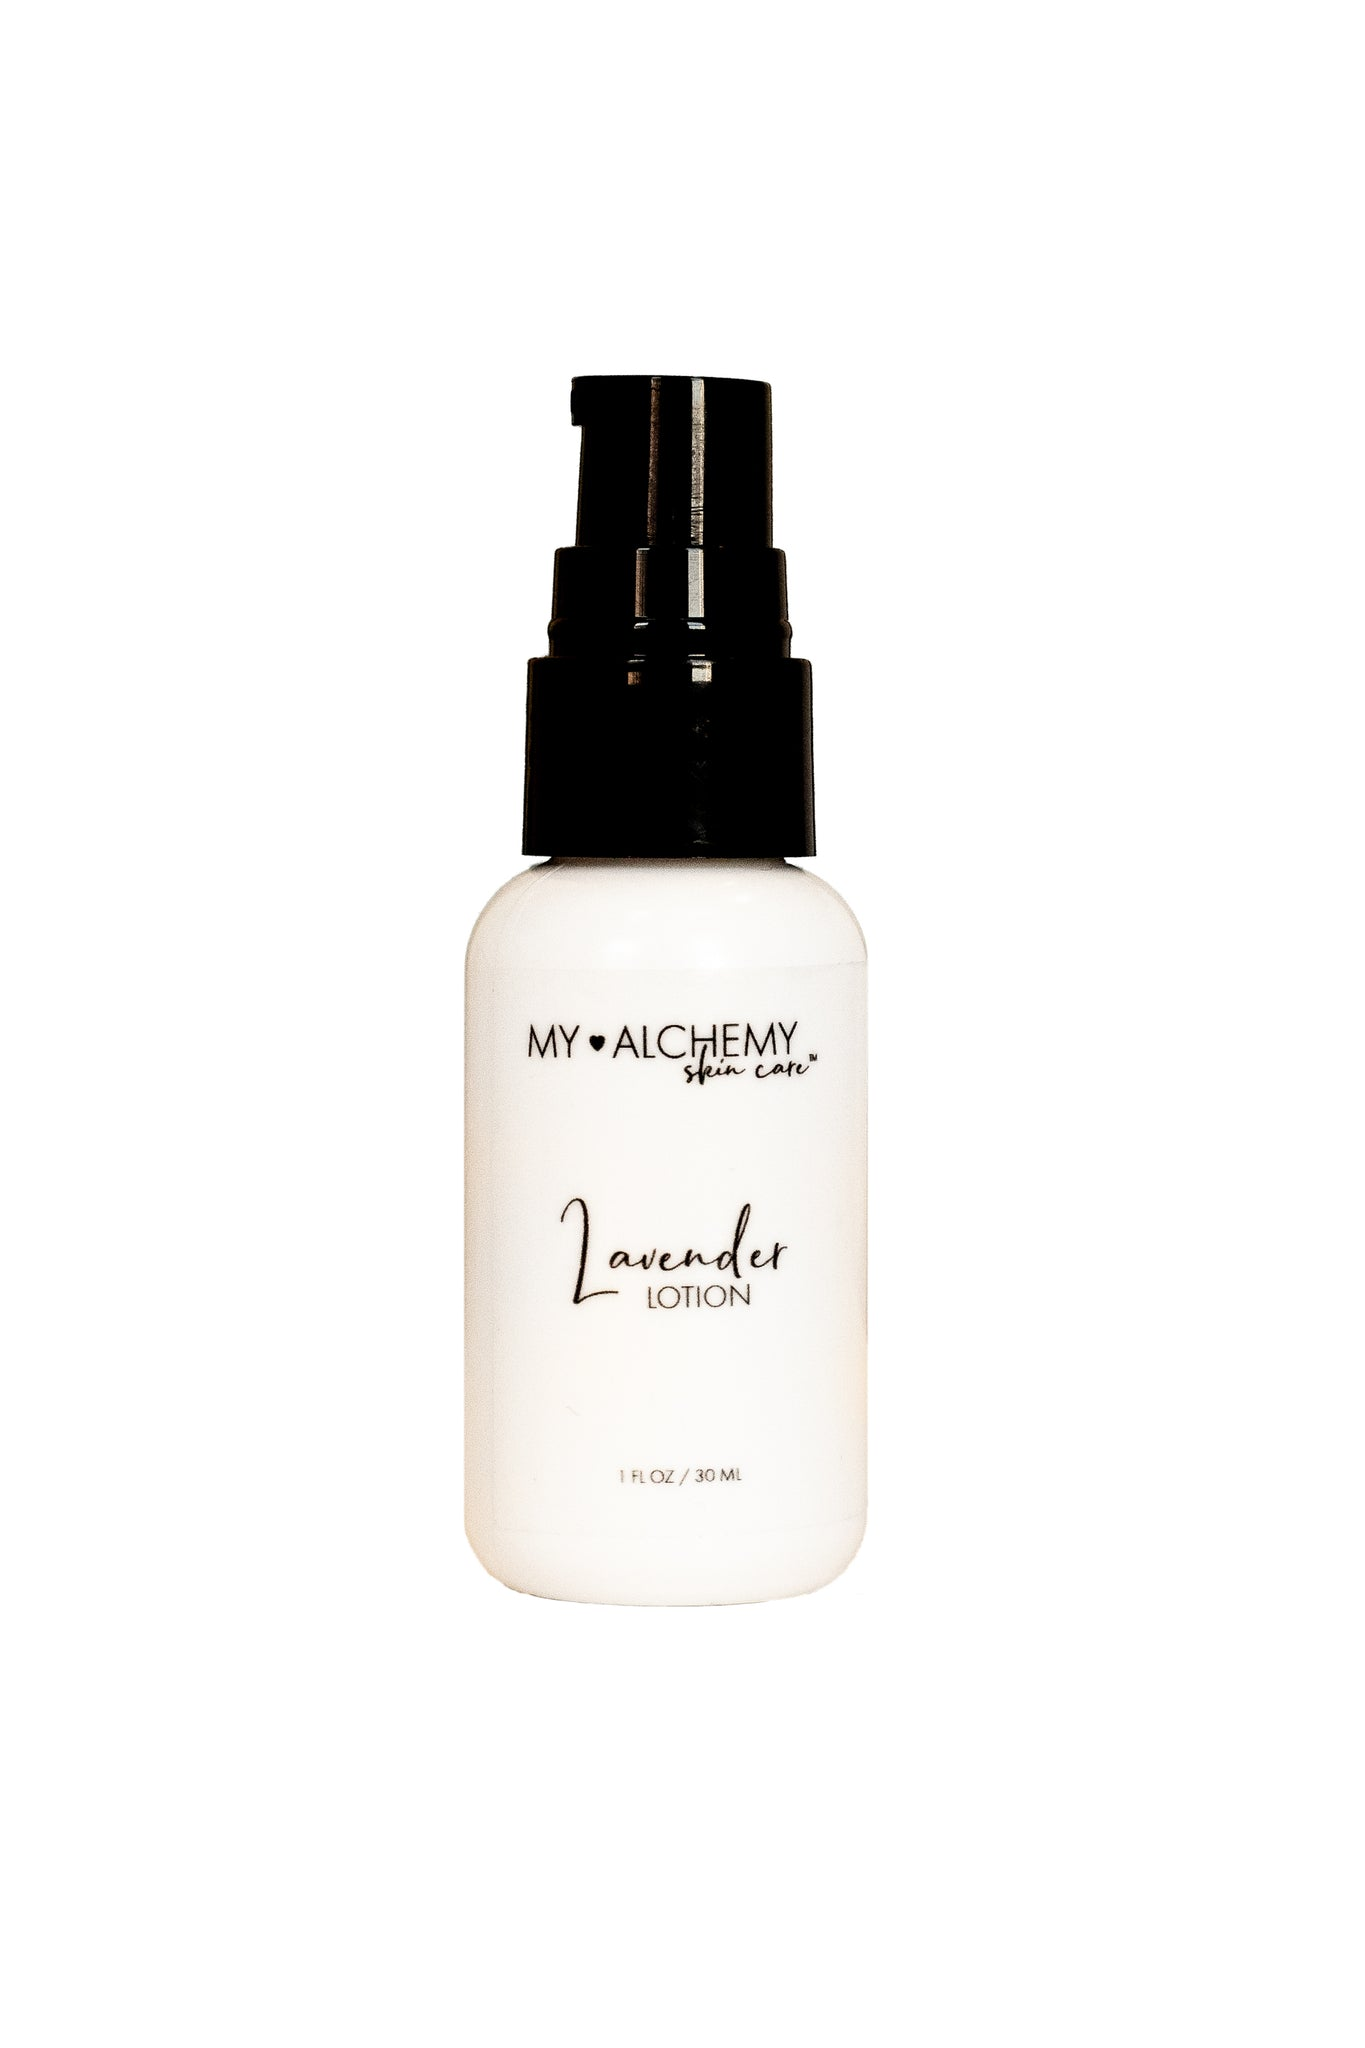 Mini Lavender Lotion. White Bottle with Black pump top. Label in Black.